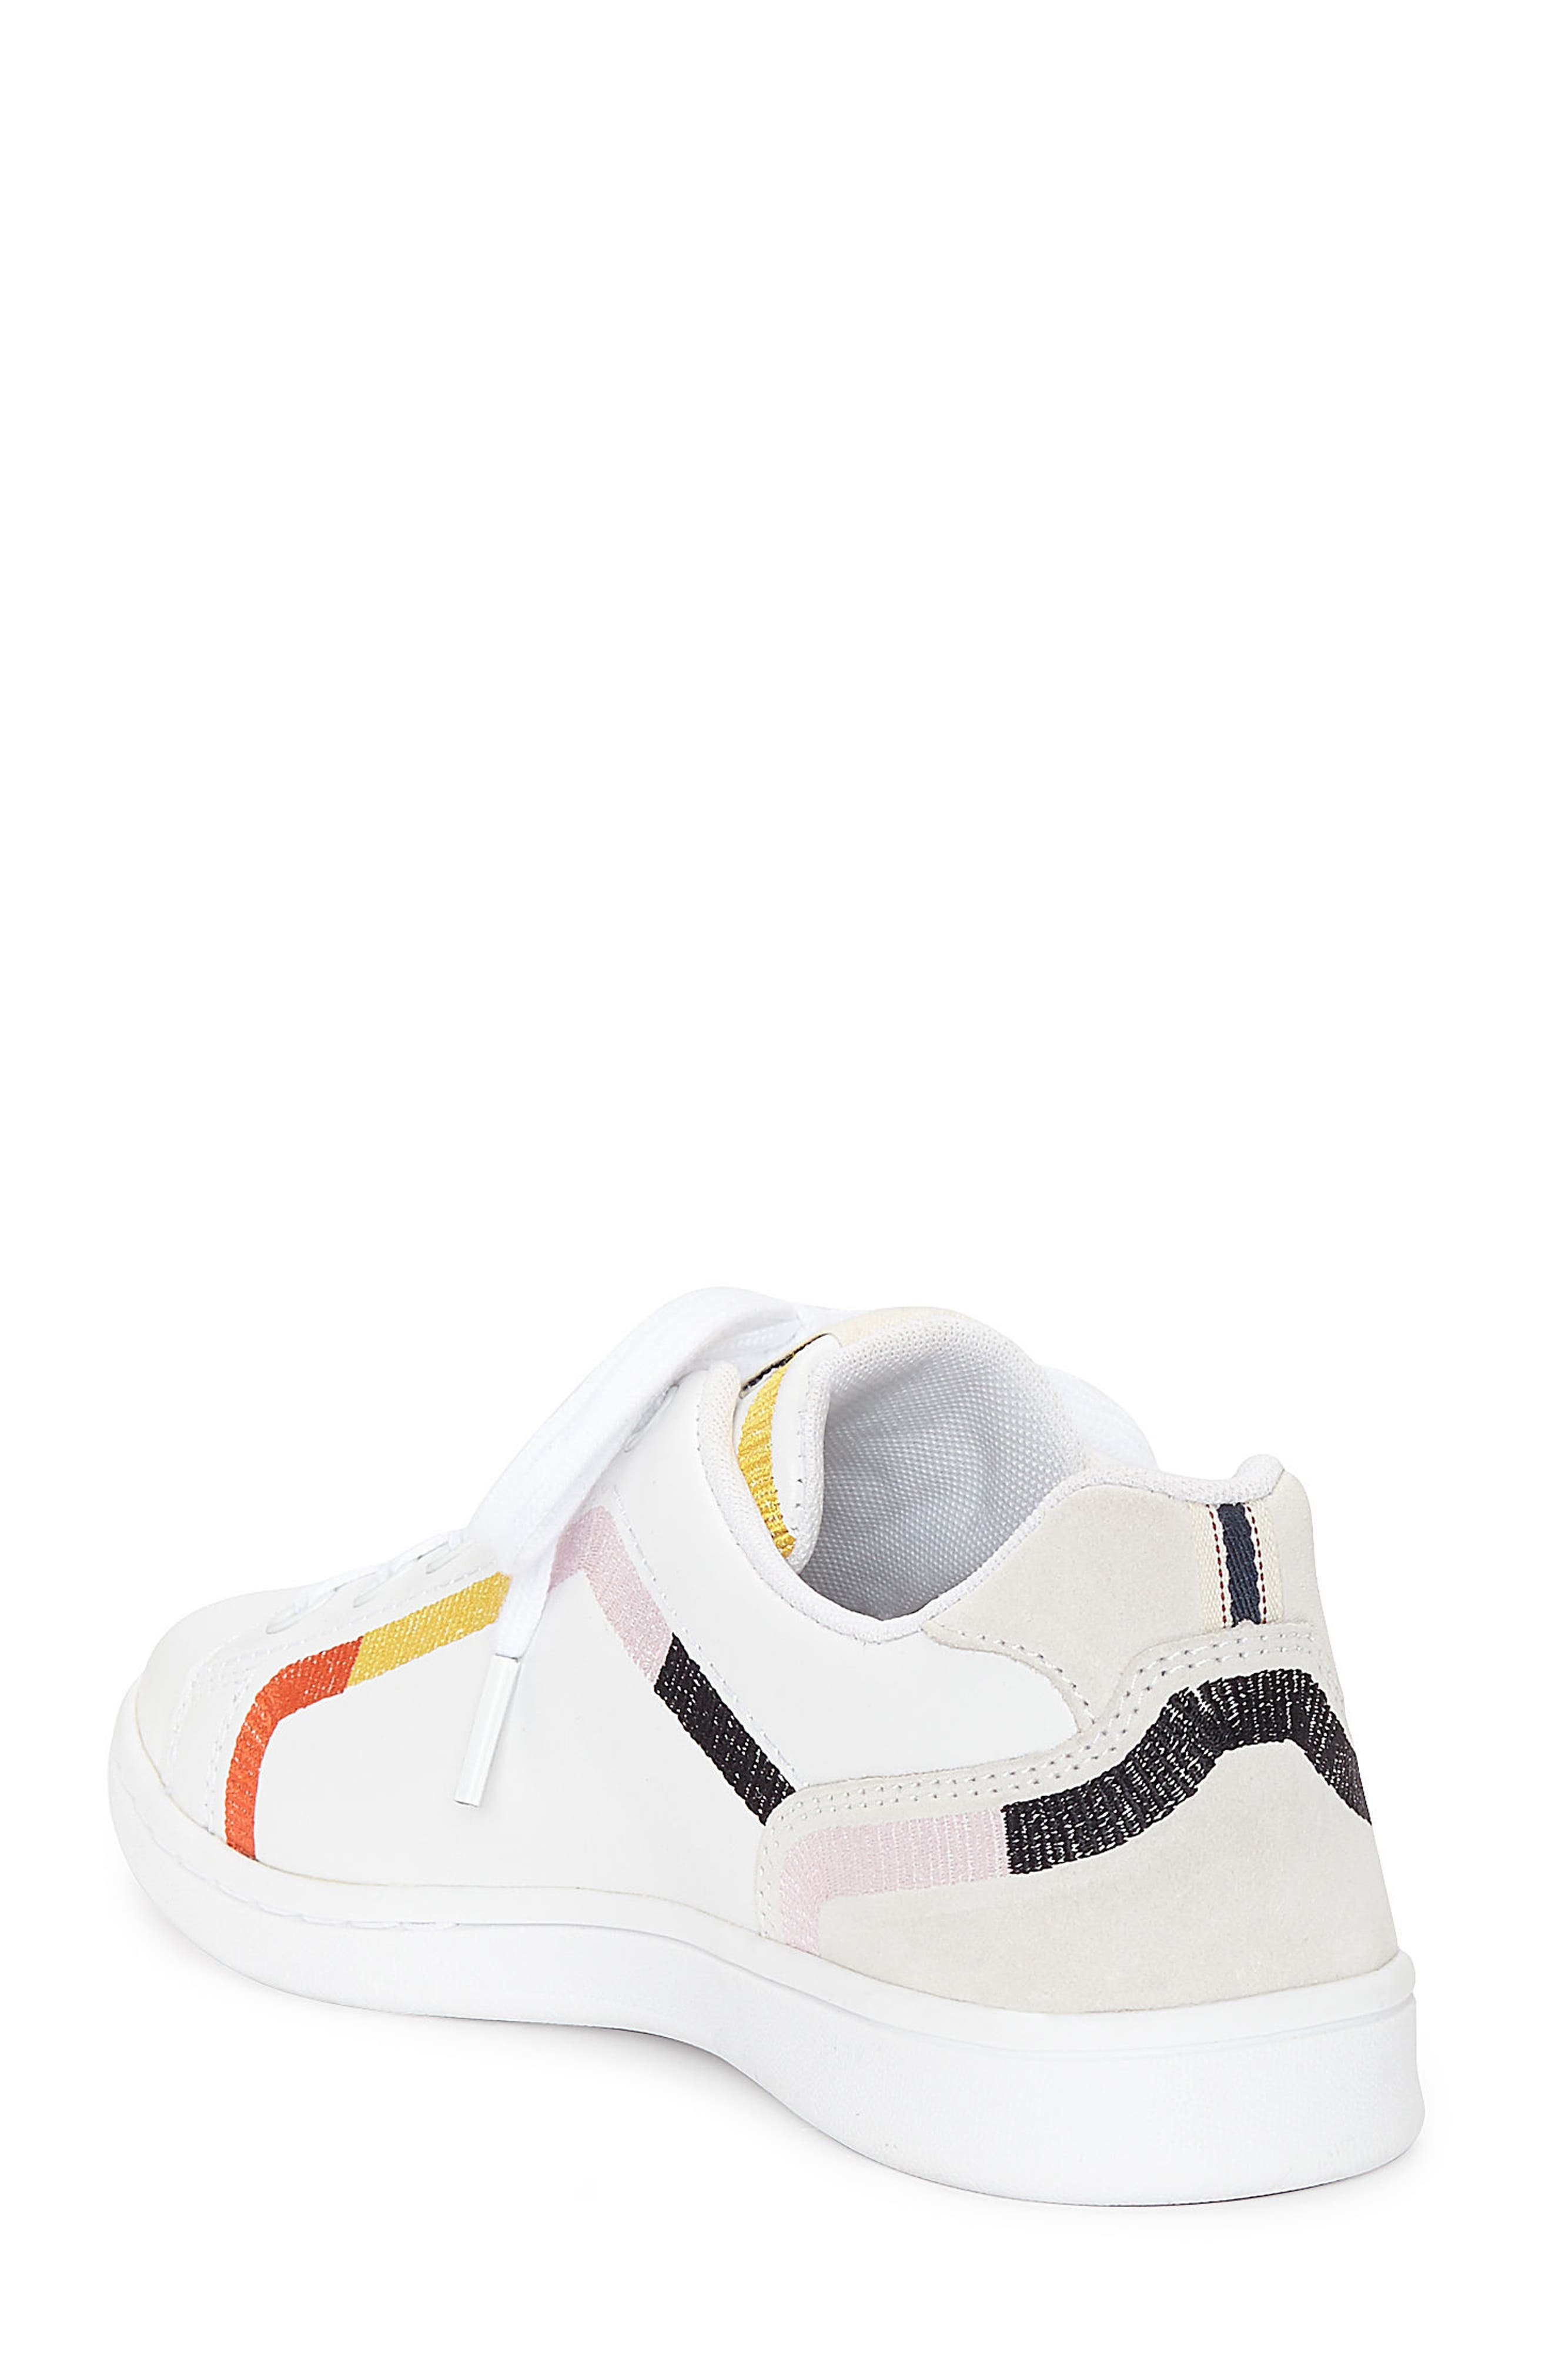 Costella Sneaker,                             Alternate thumbnail 2, color,                             PURE WHITE LEATHER